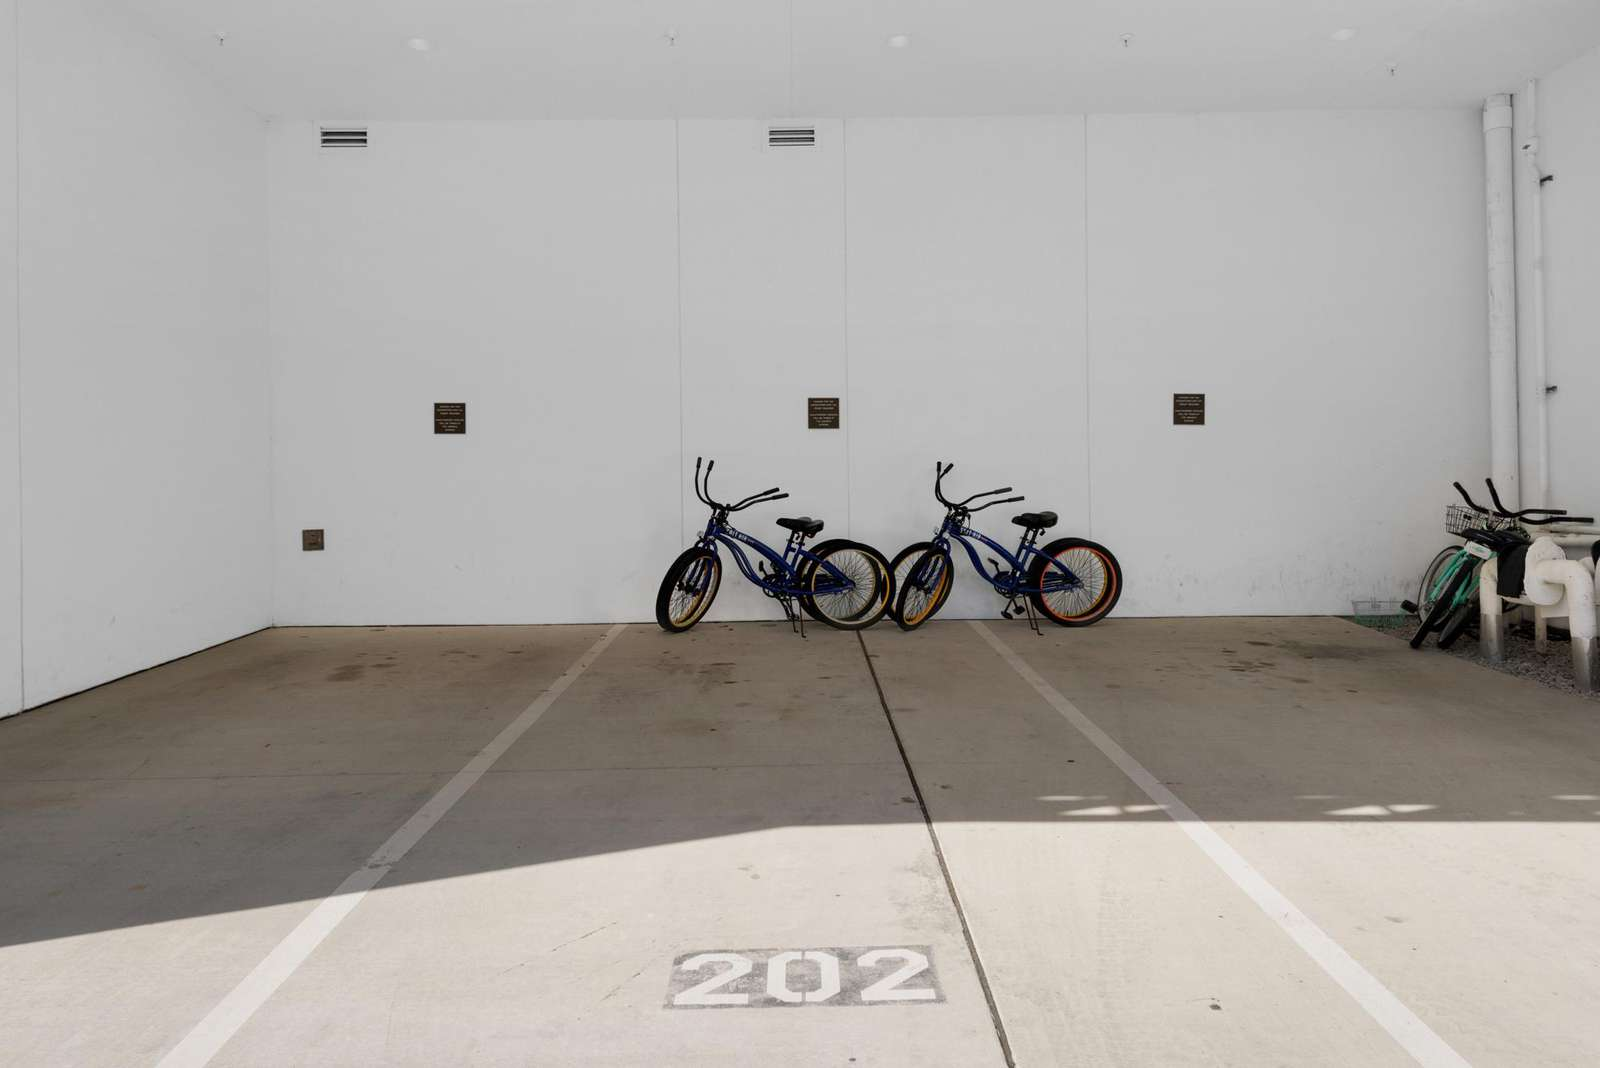 Parking space #202 with 4 adult bikes